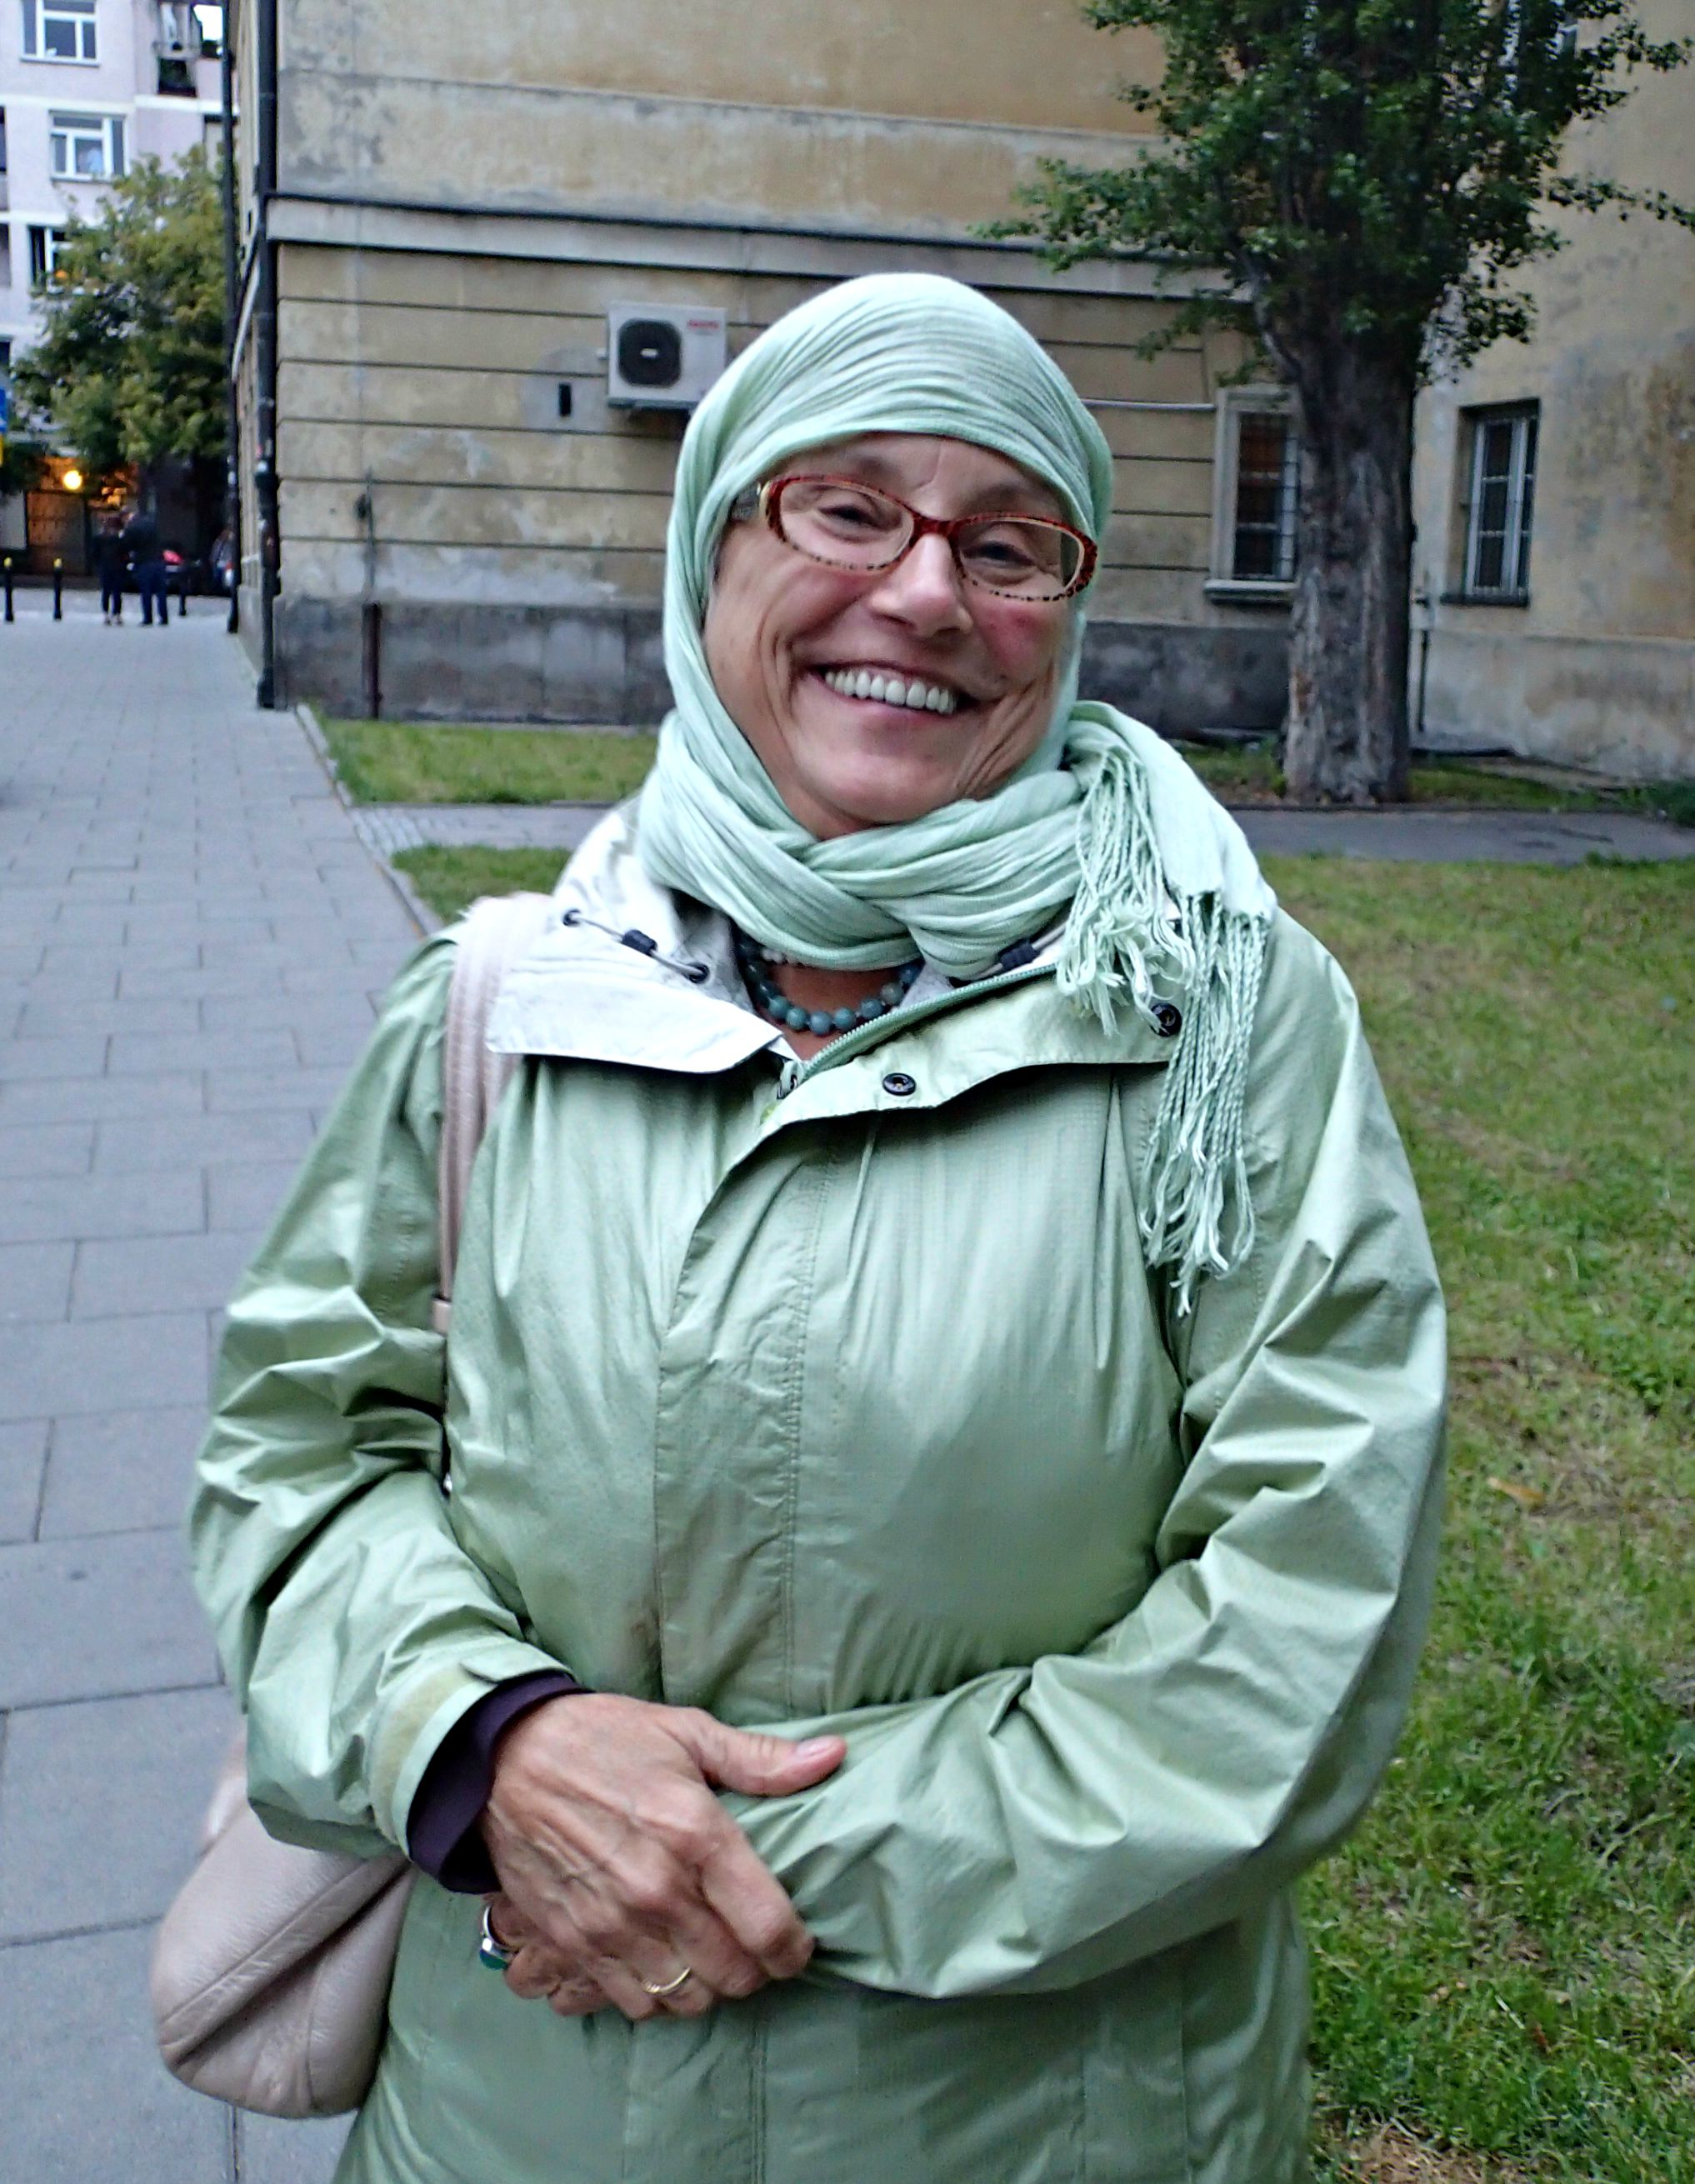 As we walked down the street en masse, it began to drizzle so Patty wrapped her scarf around her head. When I told her she now looked Muslim, she began to laugh and I captured this pic at just the right moment.